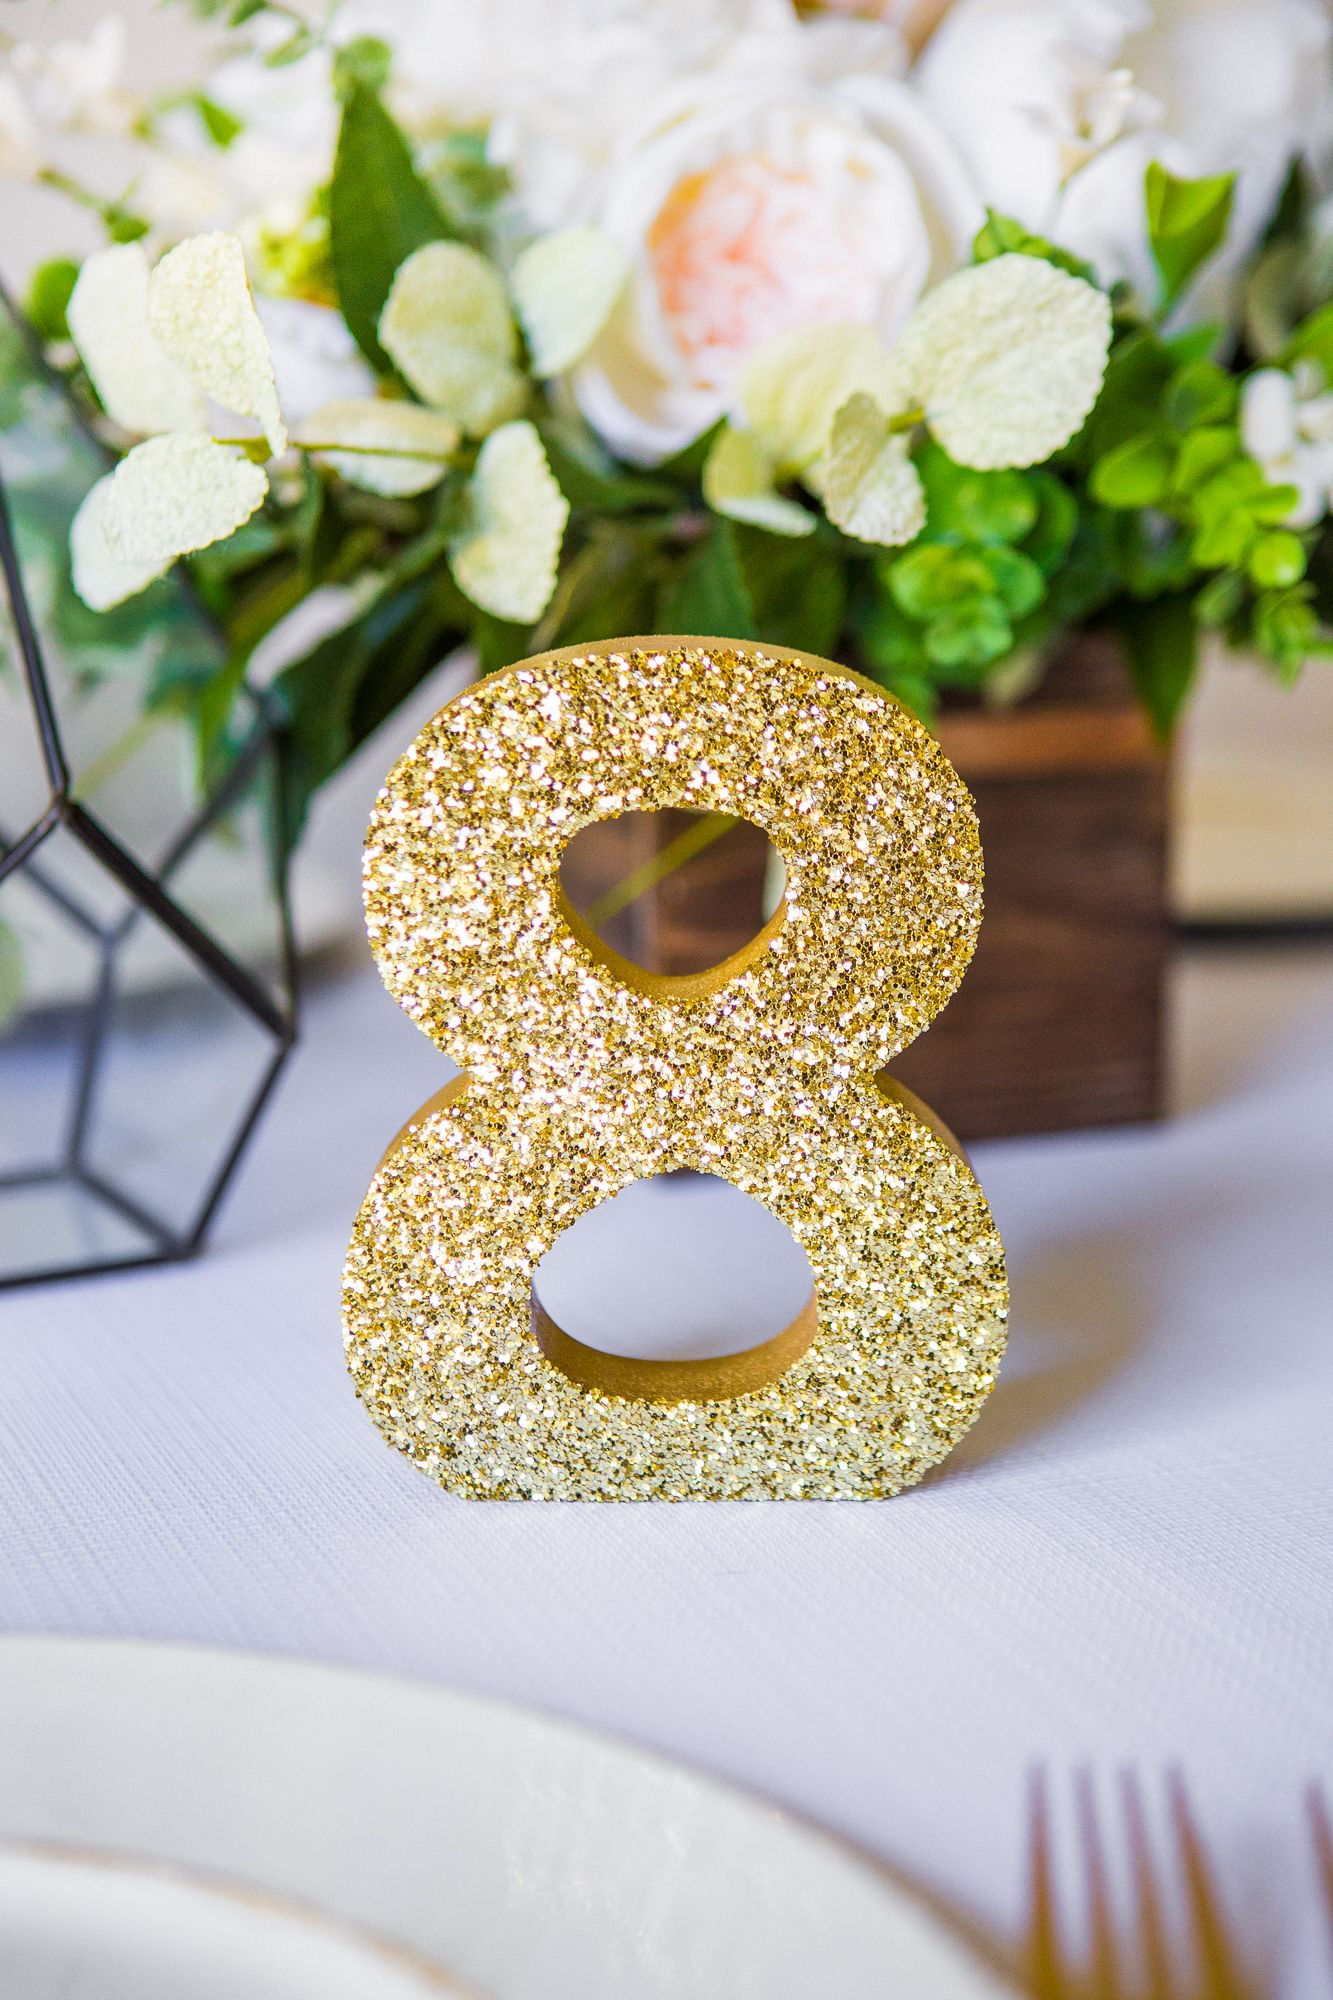 Ways To Wow! Impress your wedding guests with glitter table numbers // Artisan Wedding Decor, Gifts & Accessories by www.ZCreateDesign.com or Shop ZCreateDesign on Etsy by Clicking Pin